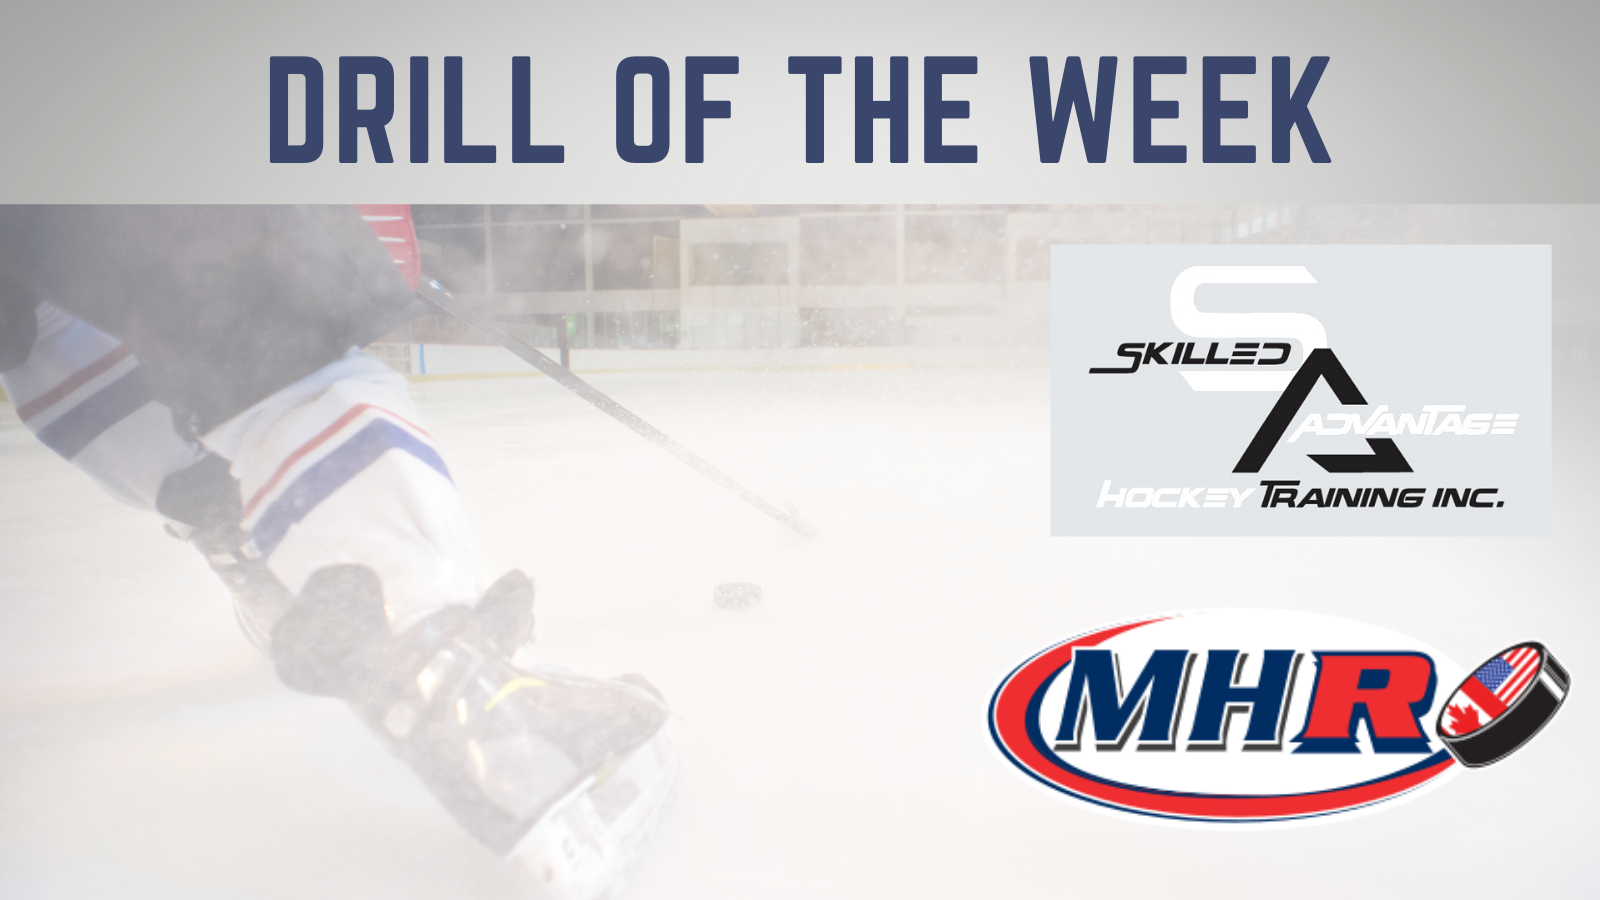 Drill of the Week 2 Powered by Skilled Advantage Hockey